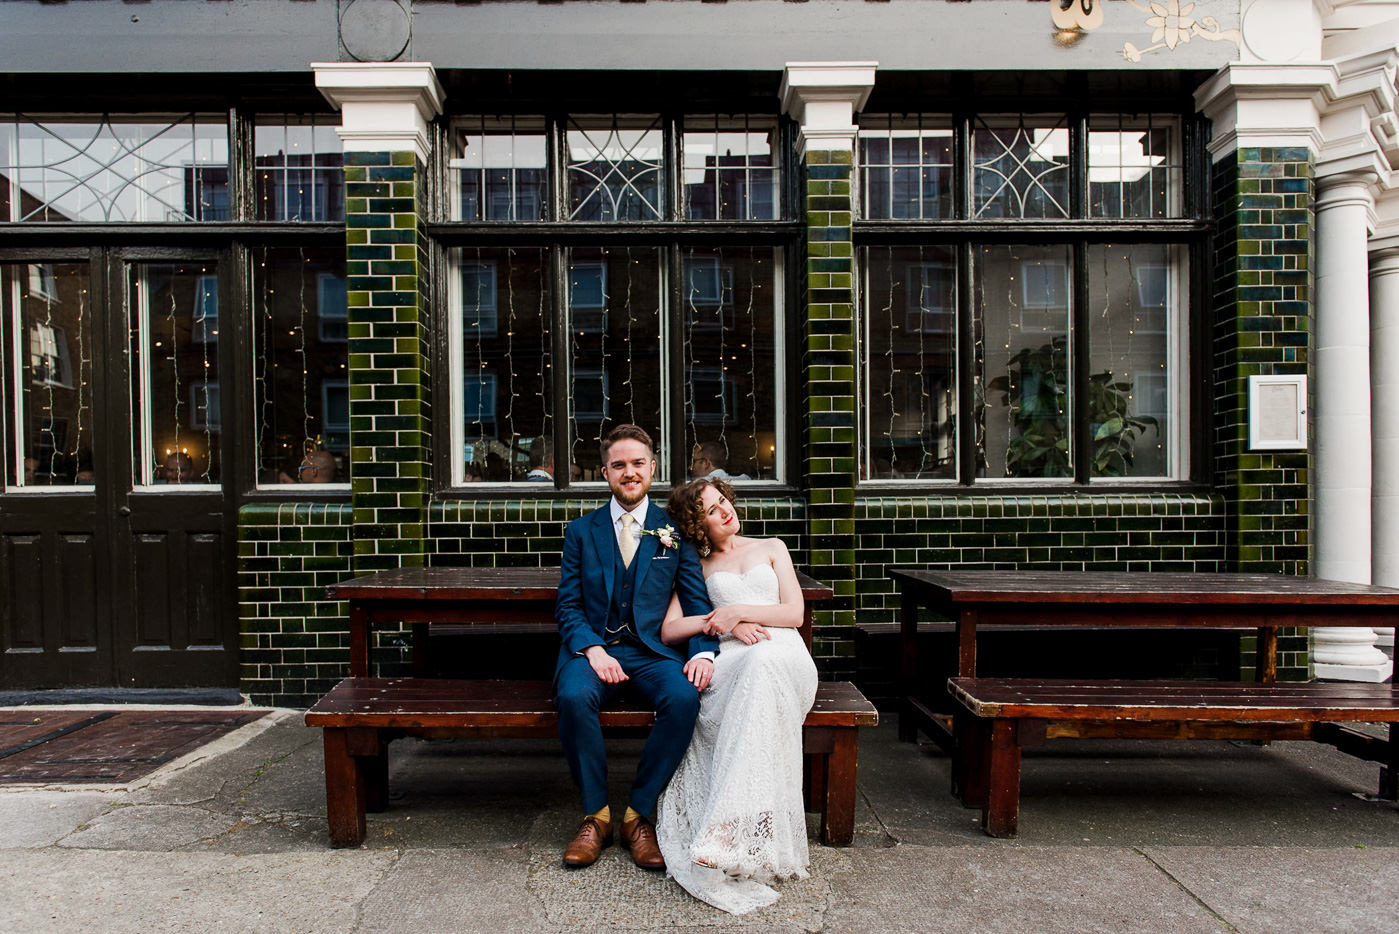 London pub wedding alternative wedding photographer